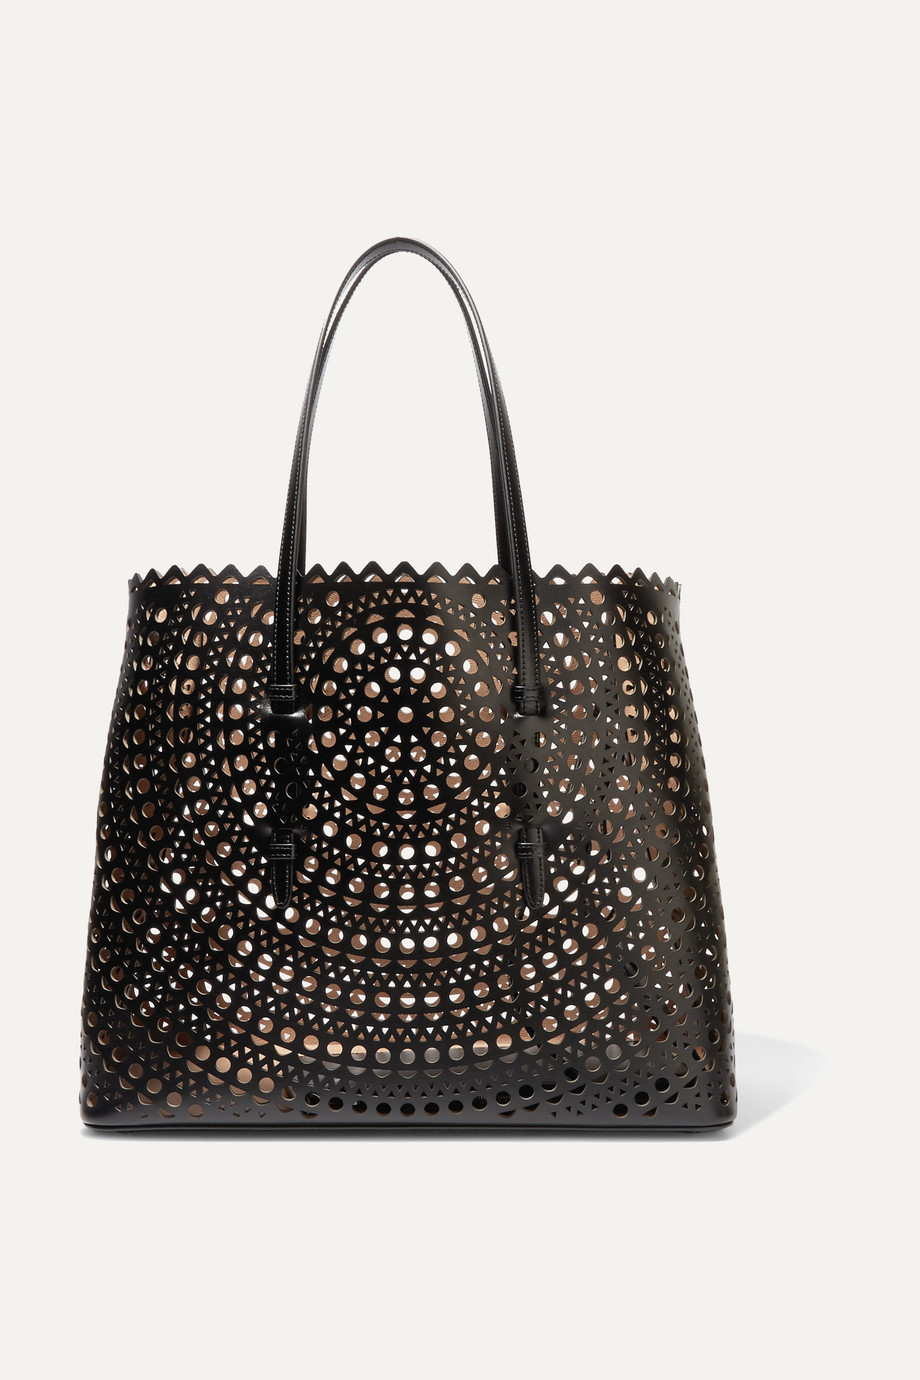 Alaïa Mina laser-cut leather tote